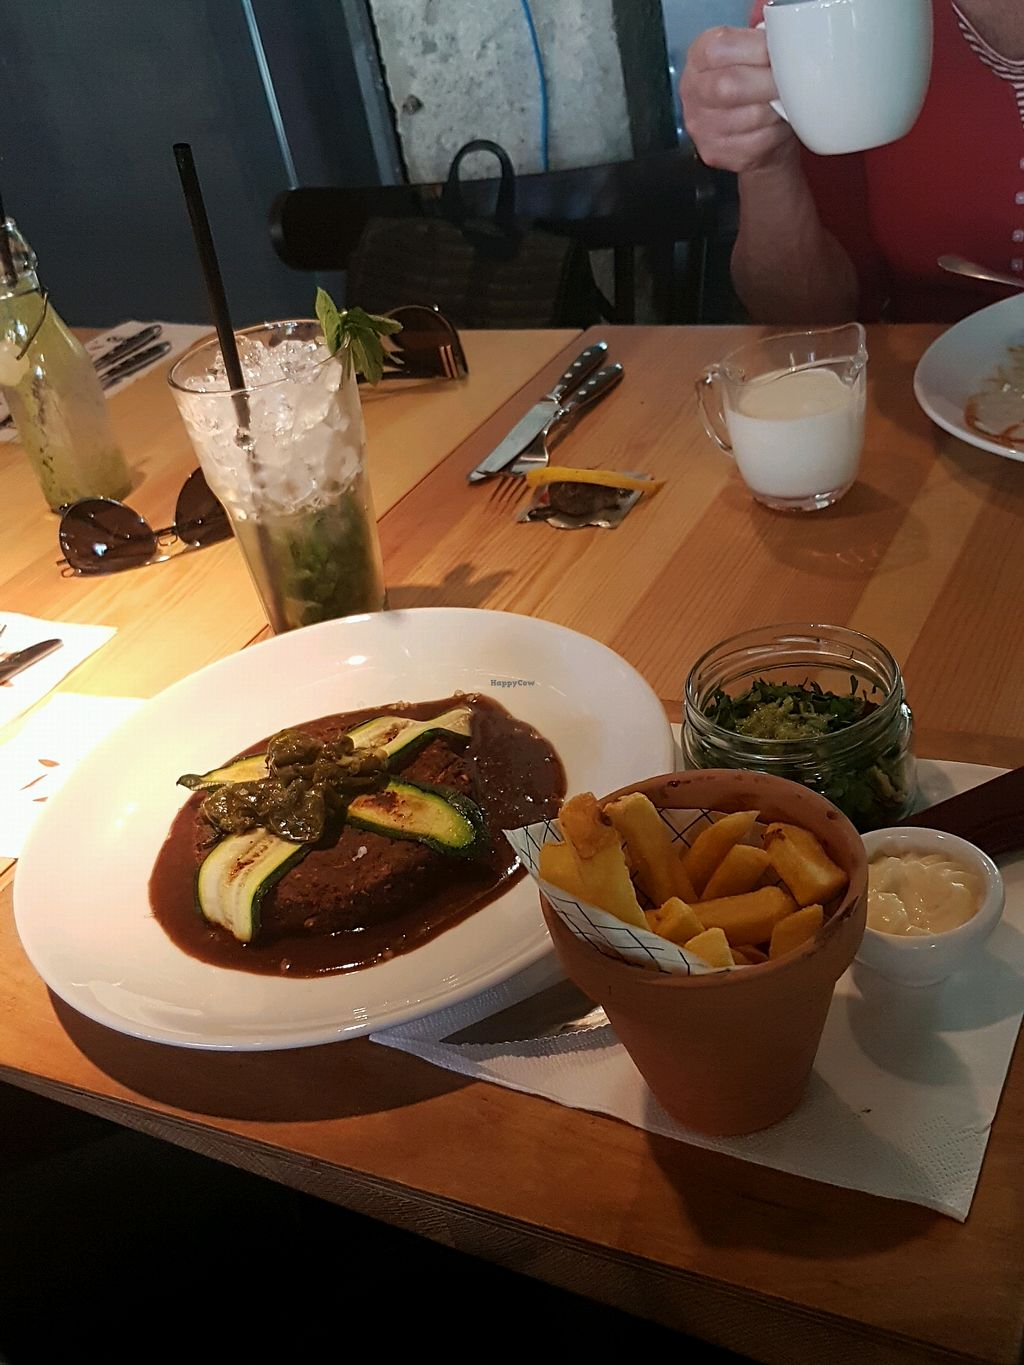 """Photo of Orzo People Music Nature  by <a href=""""/members/profile/PerrySwift"""">PerrySwift</a> <br/>vegan steak, fries and mayo <br/> April 20, 2018  - <a href='/contact/abuse/image/114841/388769'>Report</a>"""